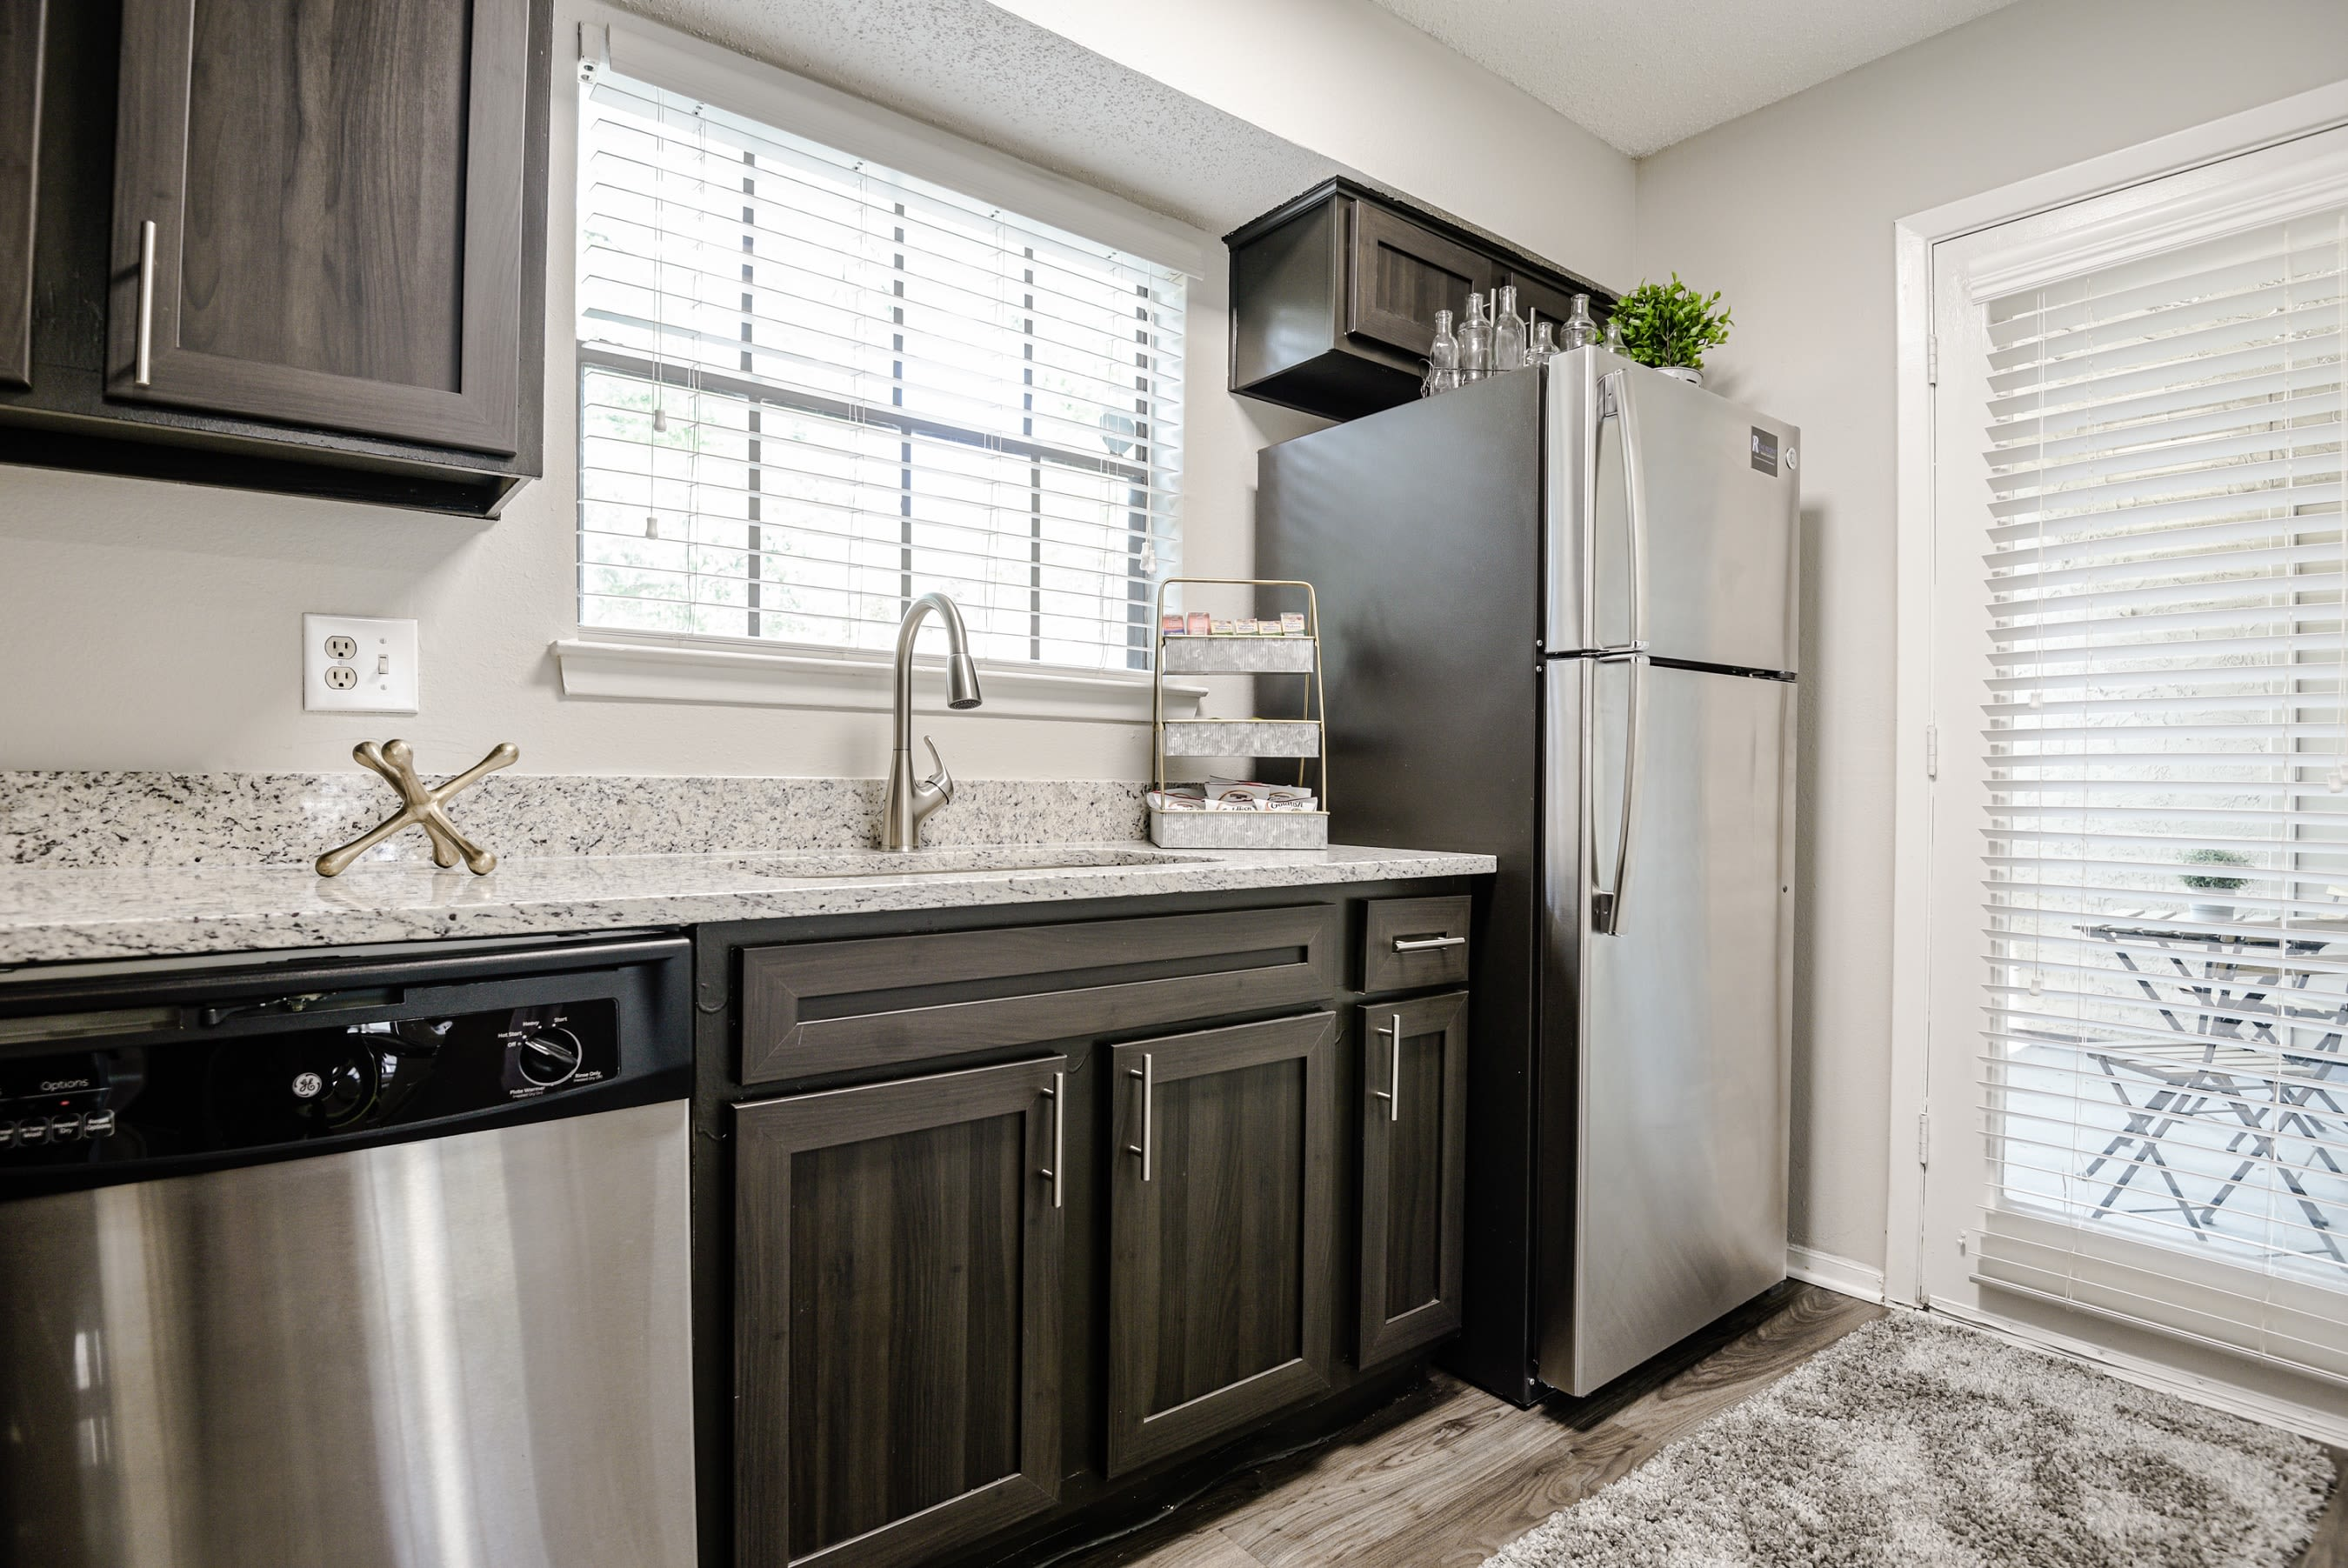 Modern kitchen with stainless steel appliances and granite countertops at The Regent in Dallas, Texas